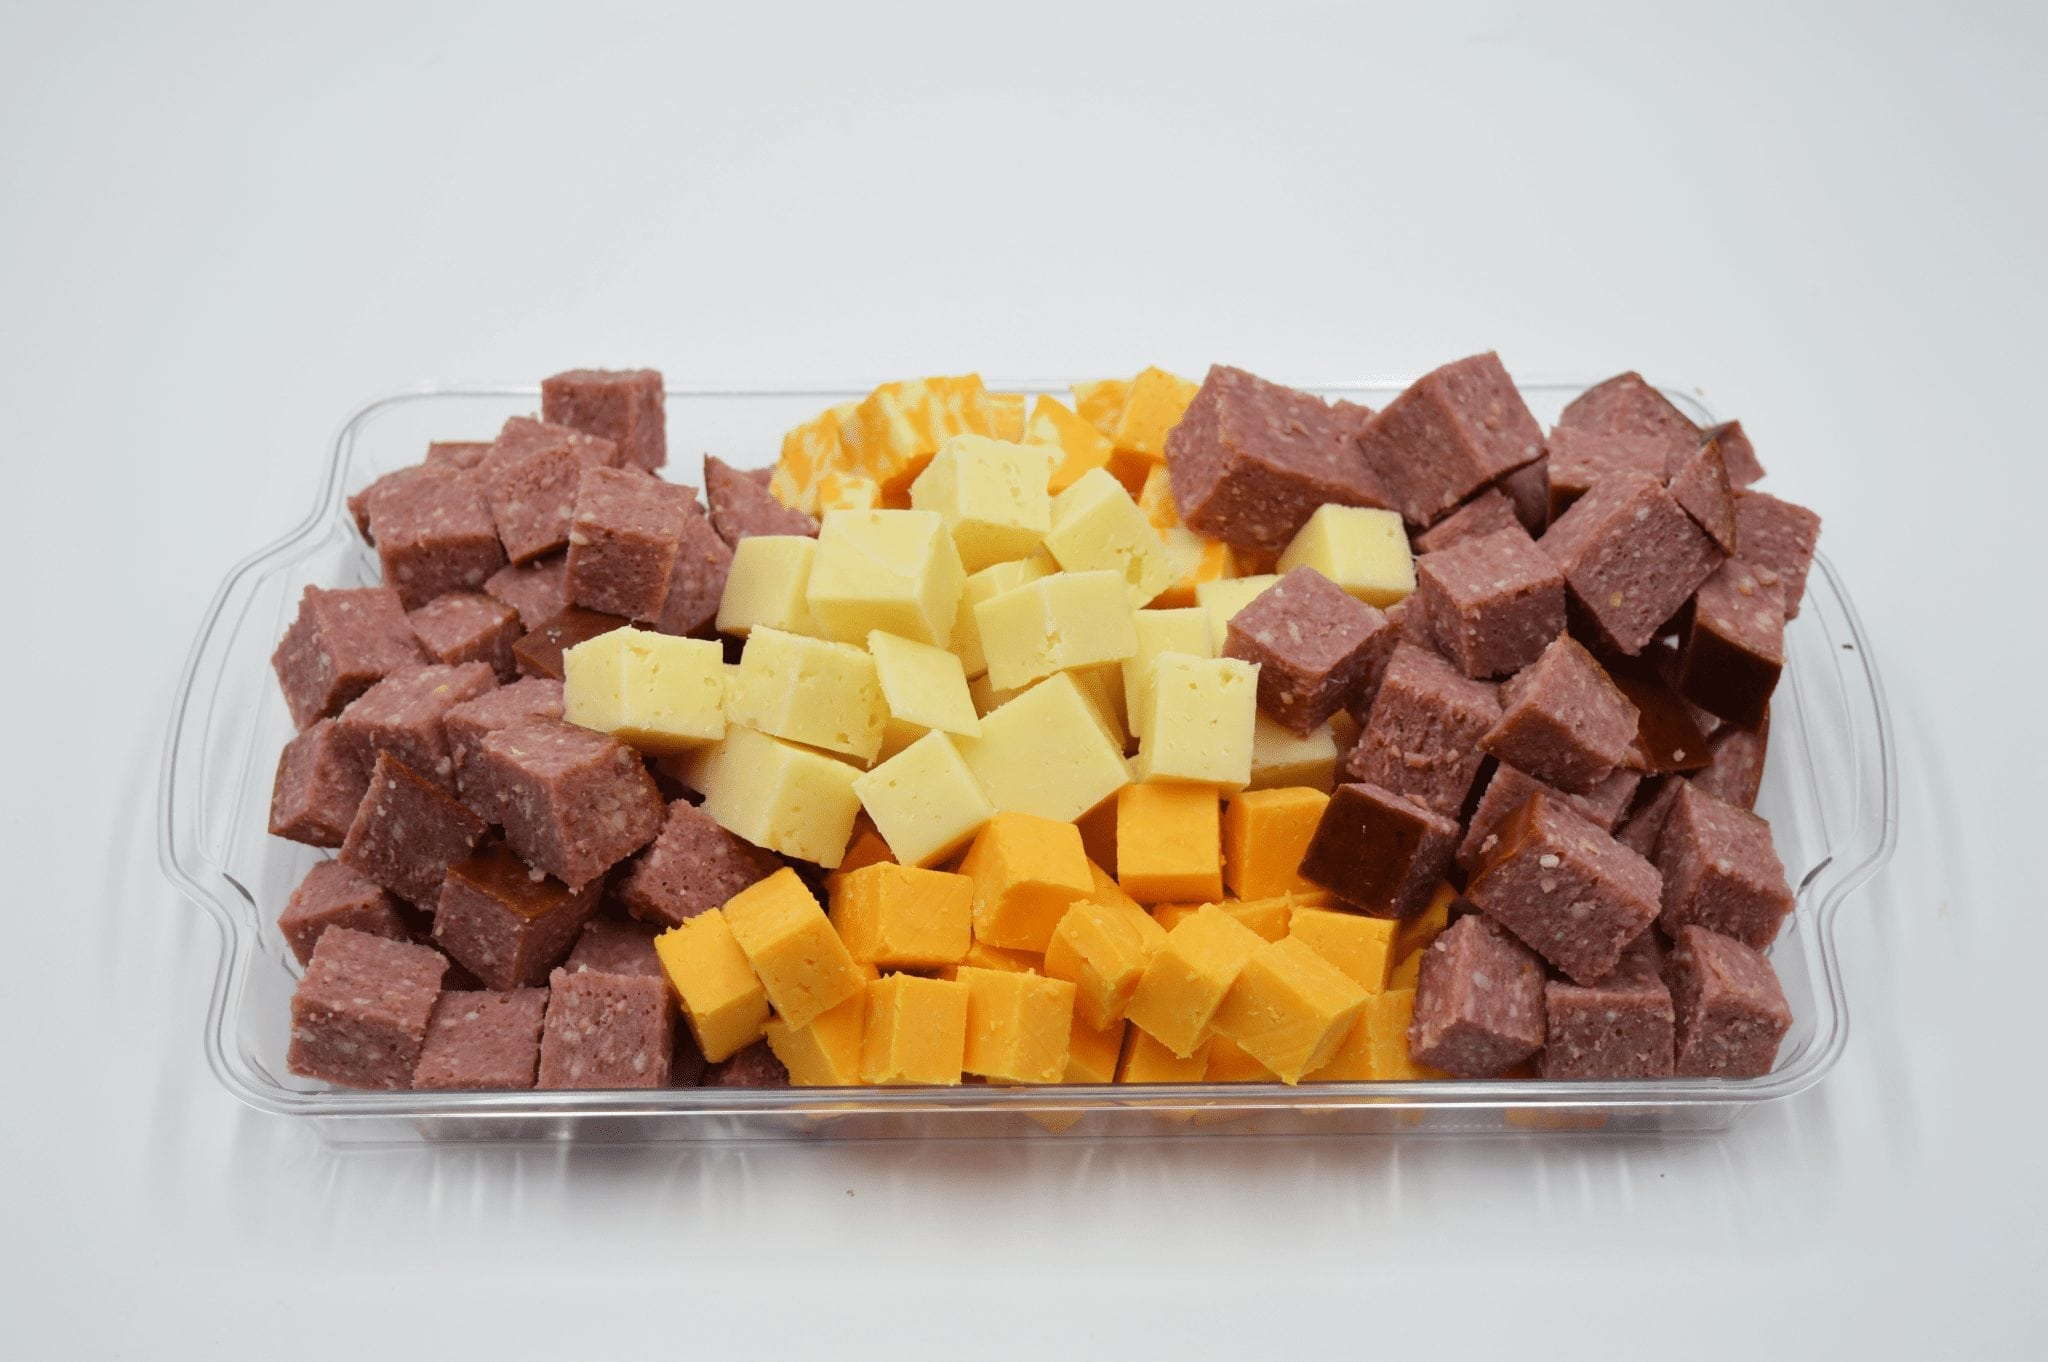 platter of cured meat and cheese cubes